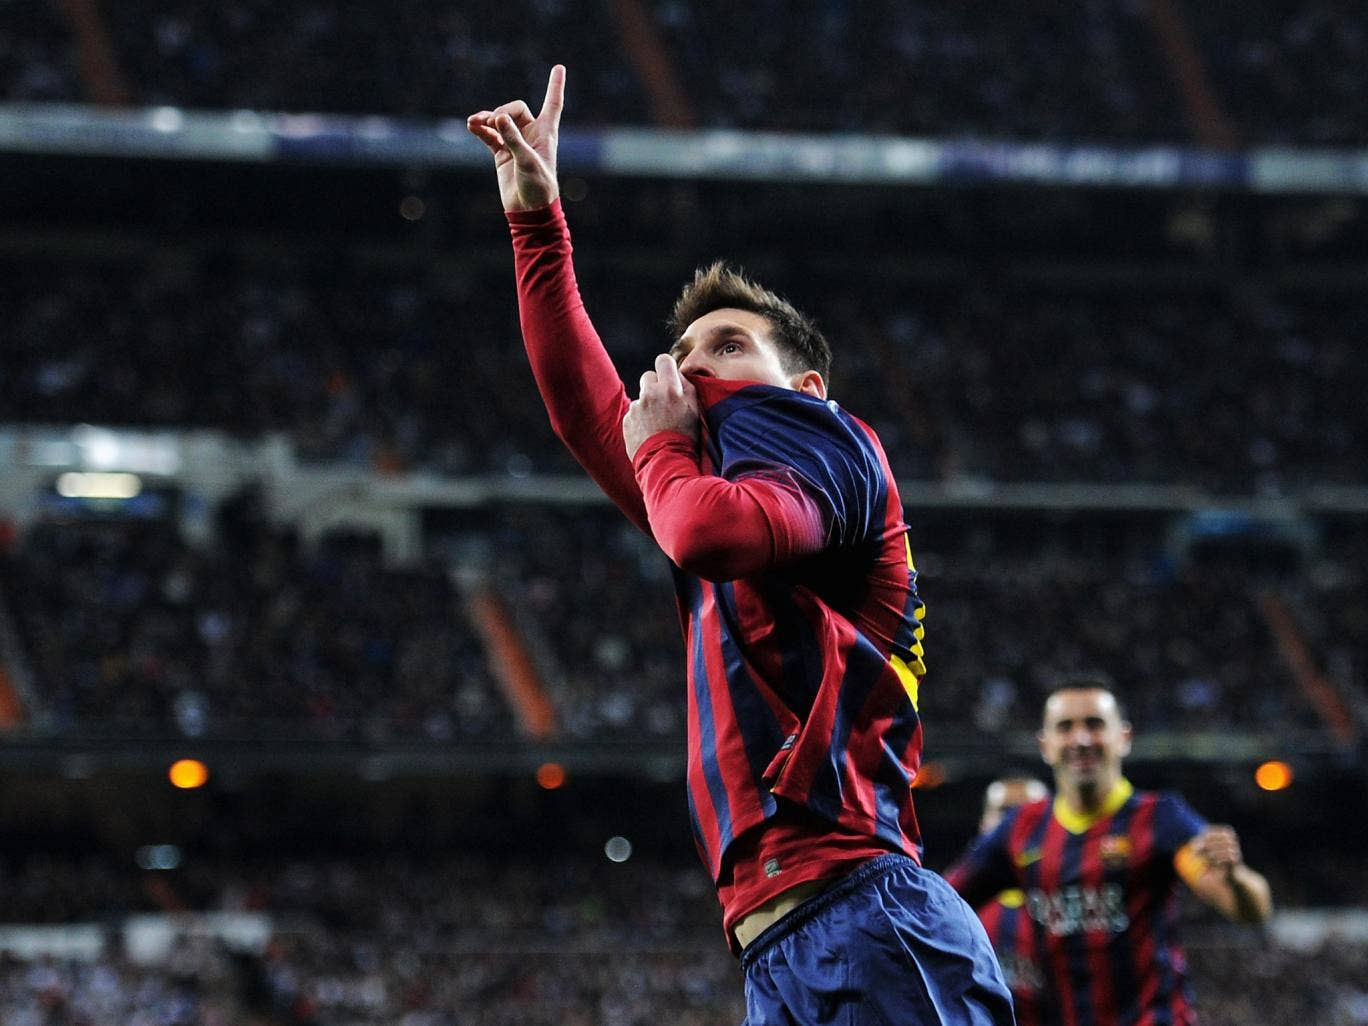 Lionel Messi celebrates after scoring at the Bernabeu